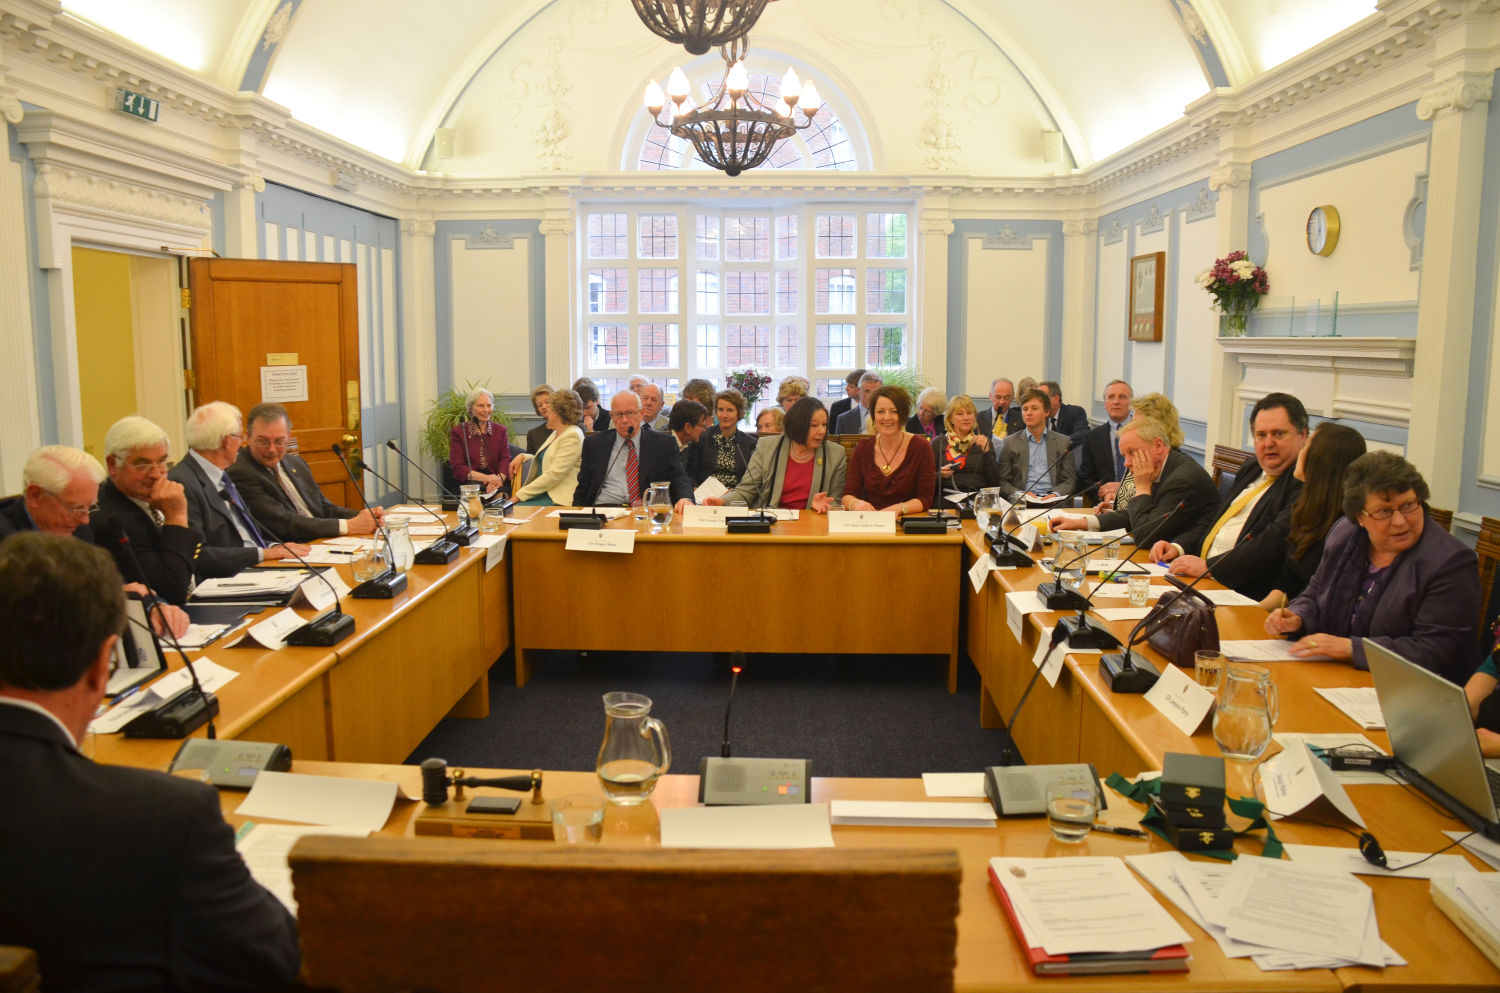 Councillors in council chamber. meeting